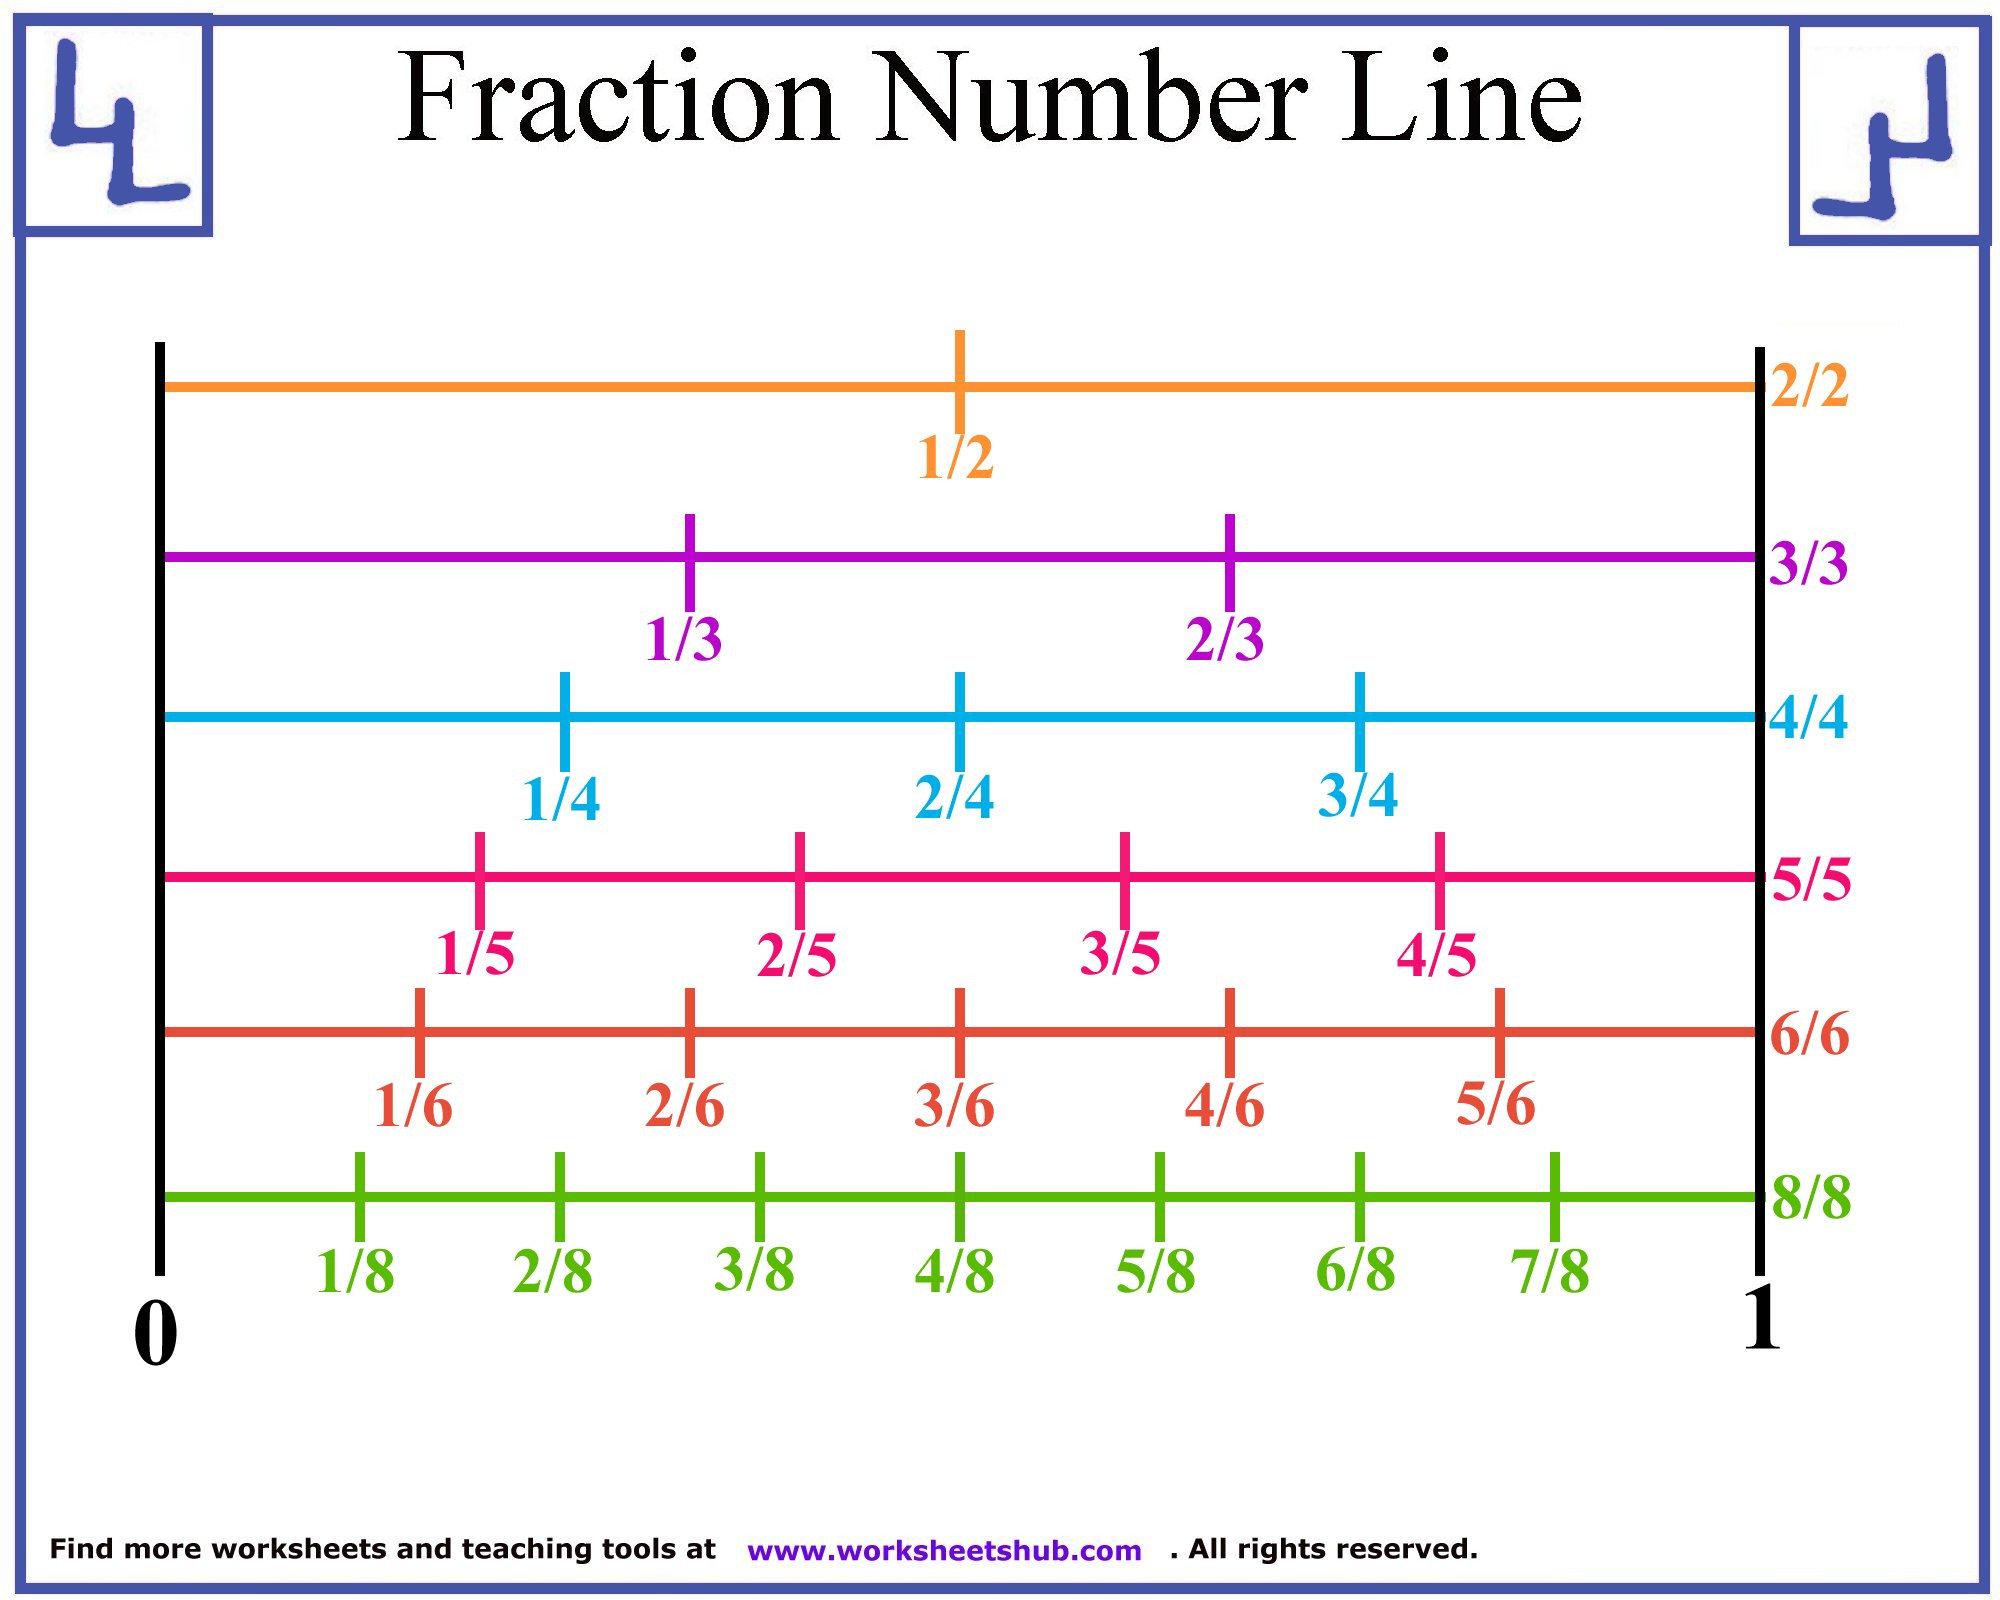 Fraction Number Line Printable Fractions On A Worksheet